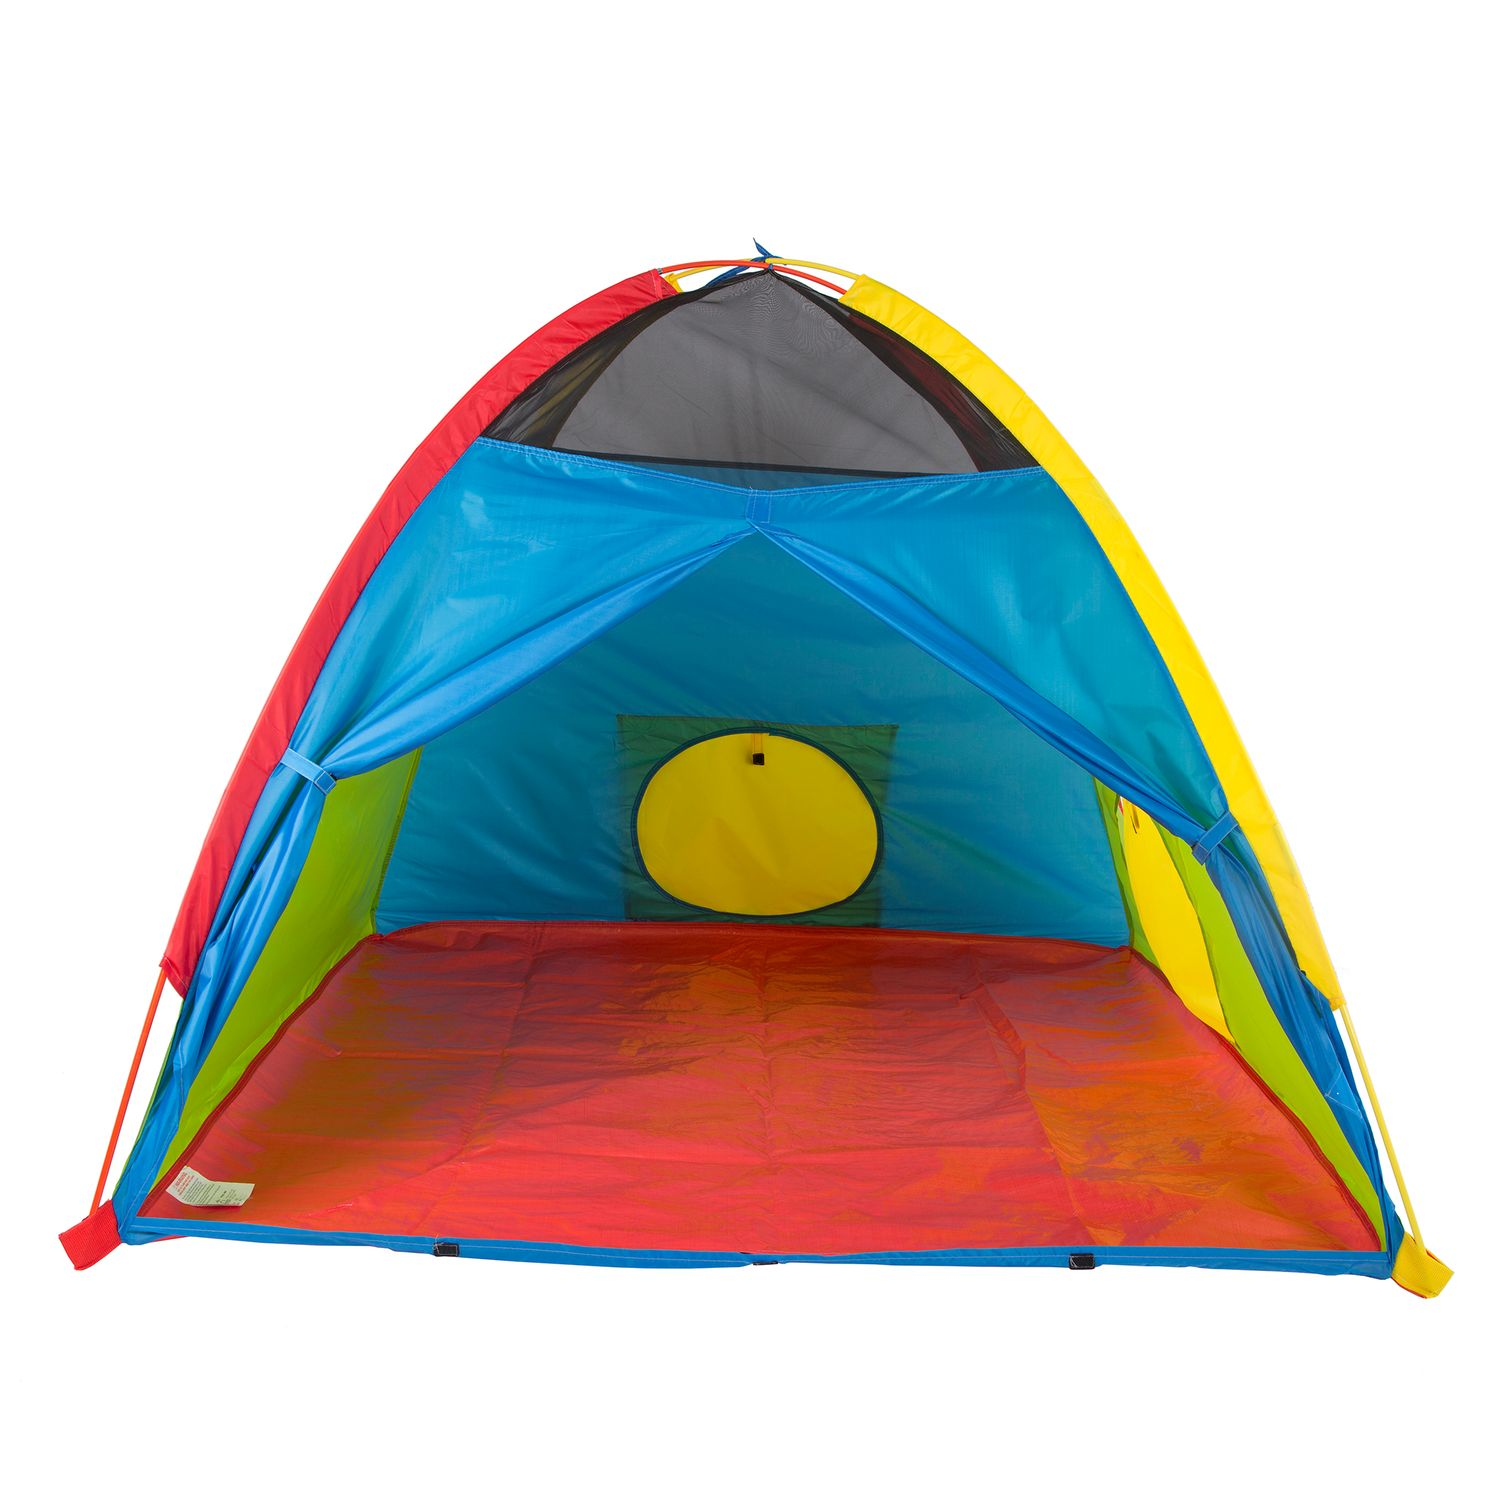 Pacific Play Tents Super Duper 4-Kid Tent  sc 1 st  Kohlu0027s & Play Tents u0026 Tunnels - Toys | Kohlu0027s